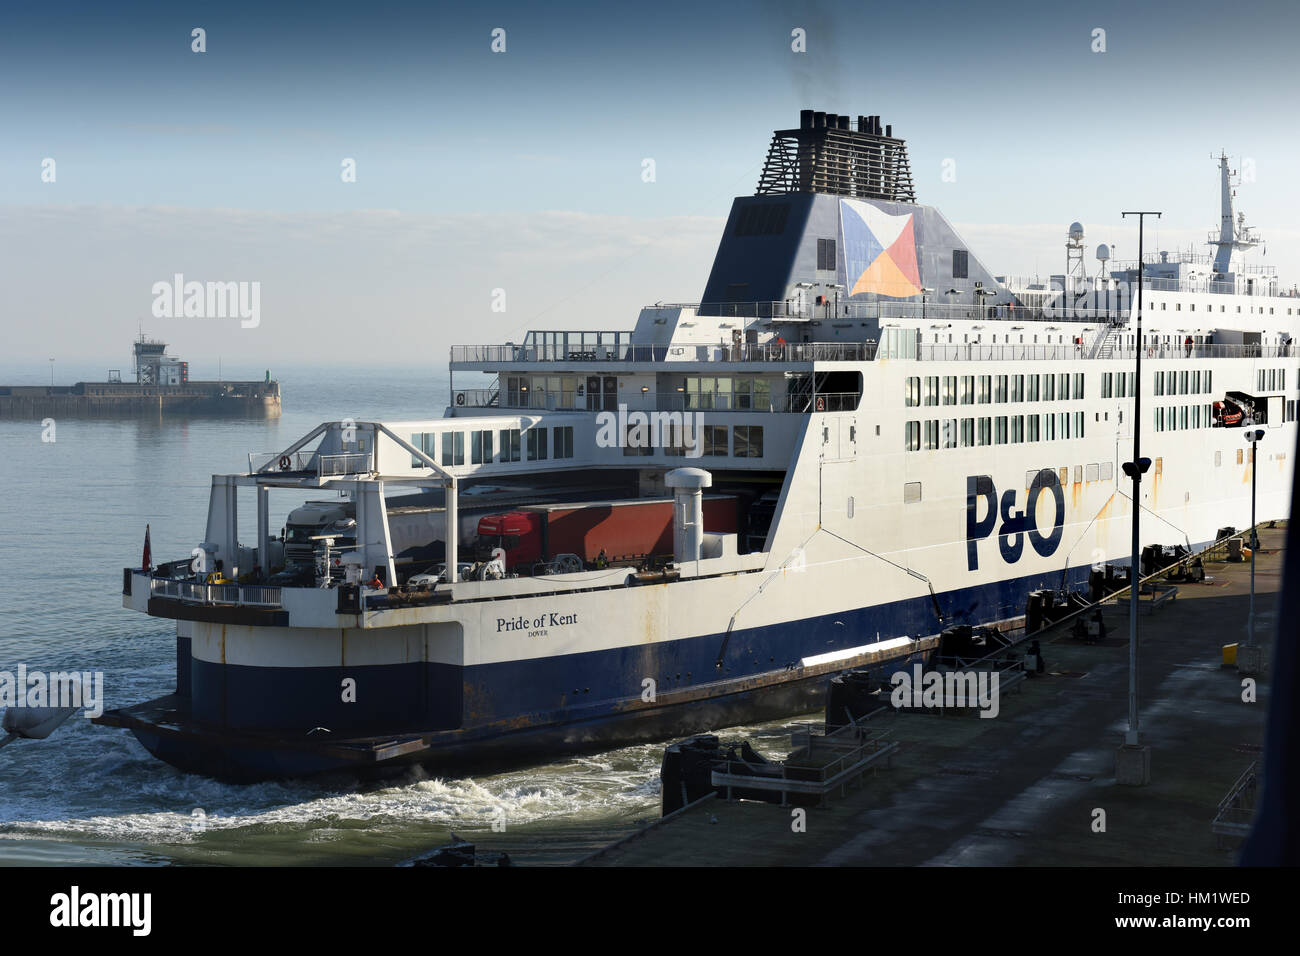 P&O ferry ship boat reversing docking at Dover harbour port - Stock Image